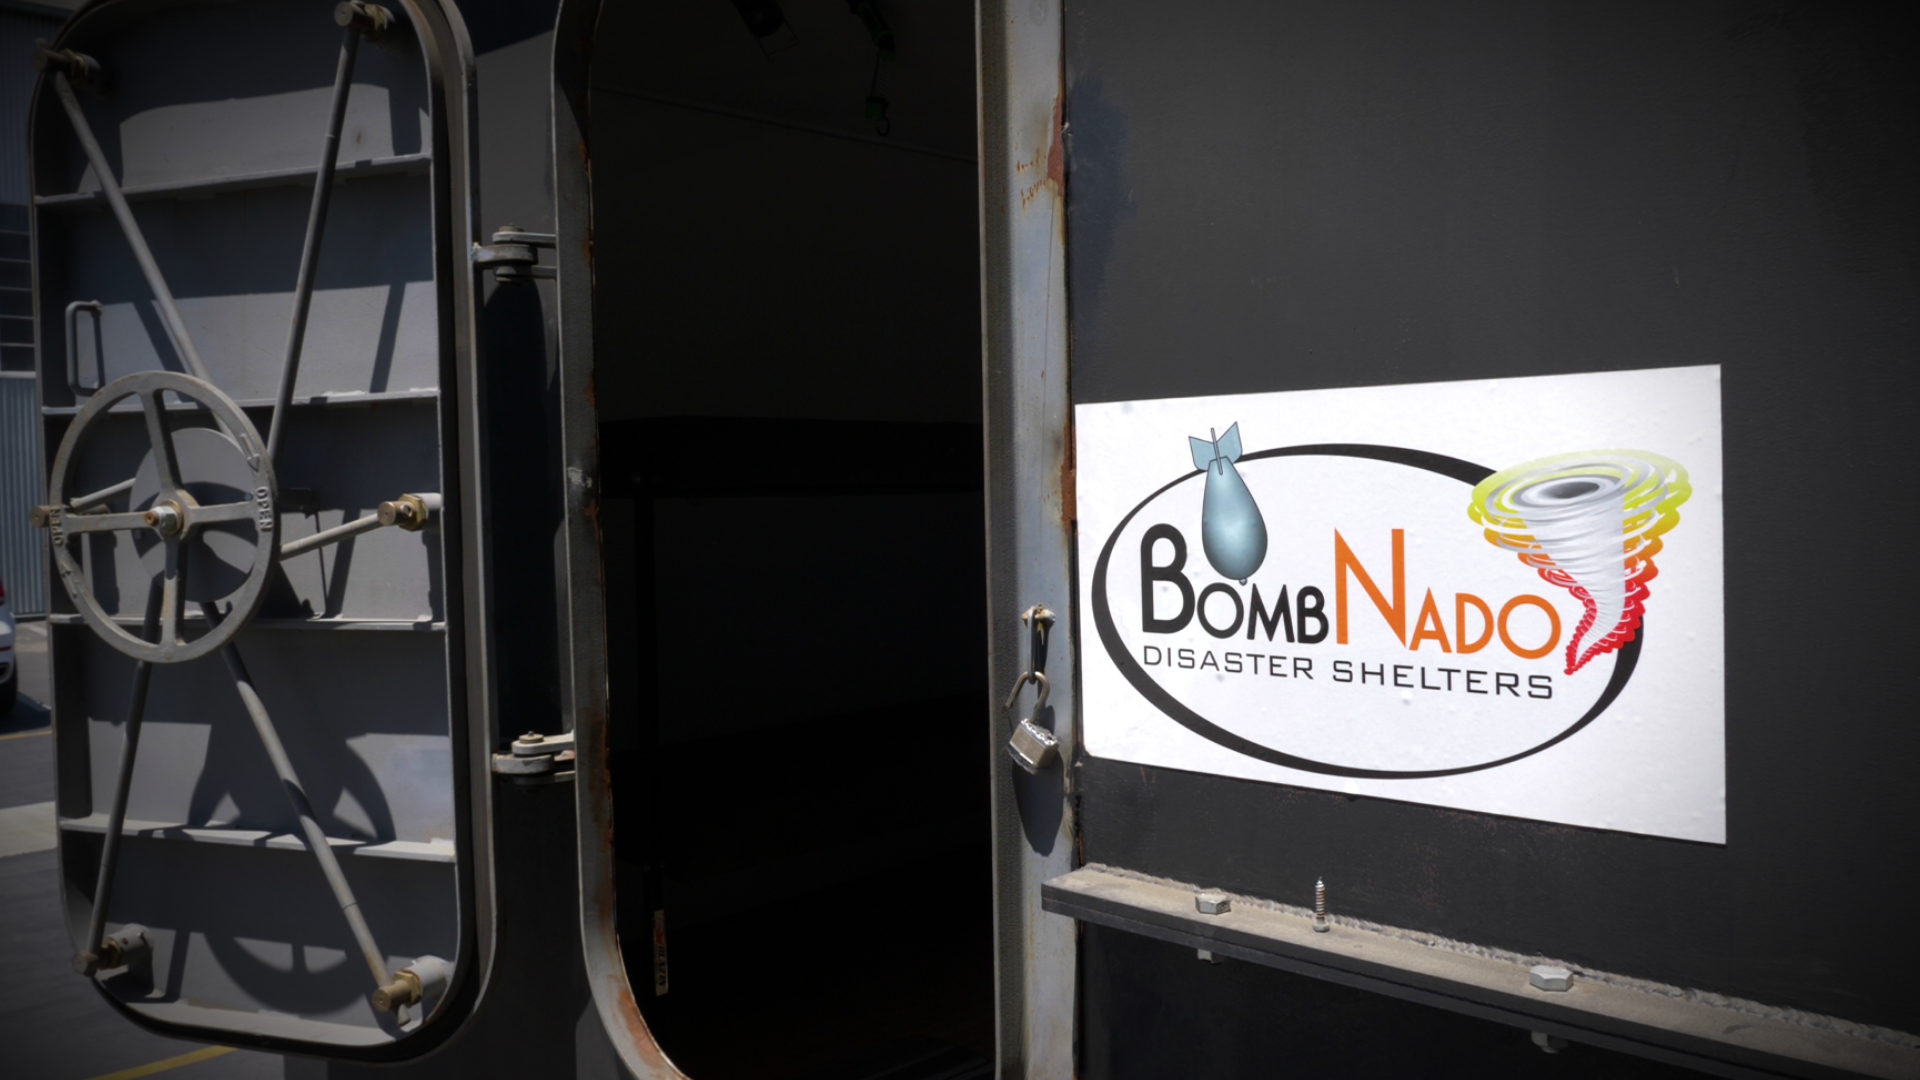 Video: A bomb shelter for every home?